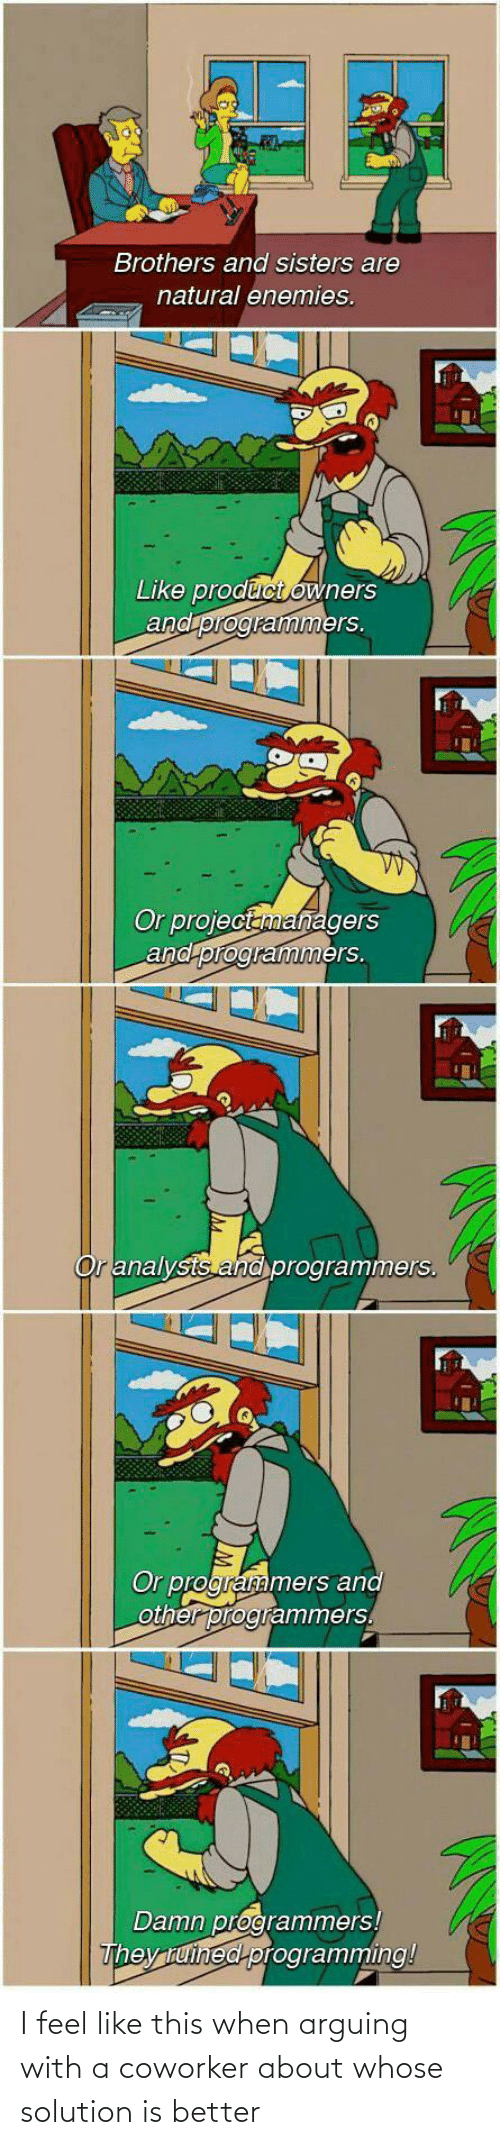 brothers: Brothers and sisters are  natural enemies.  Like product owners  and programmers.  Or projectanmanagers  and programmers.  Or analysts and programmers.  Or programmers and  other programmers.  Damn programmers!  They tuined programming! I feel like this when arguing with a coworker about whose solution is better